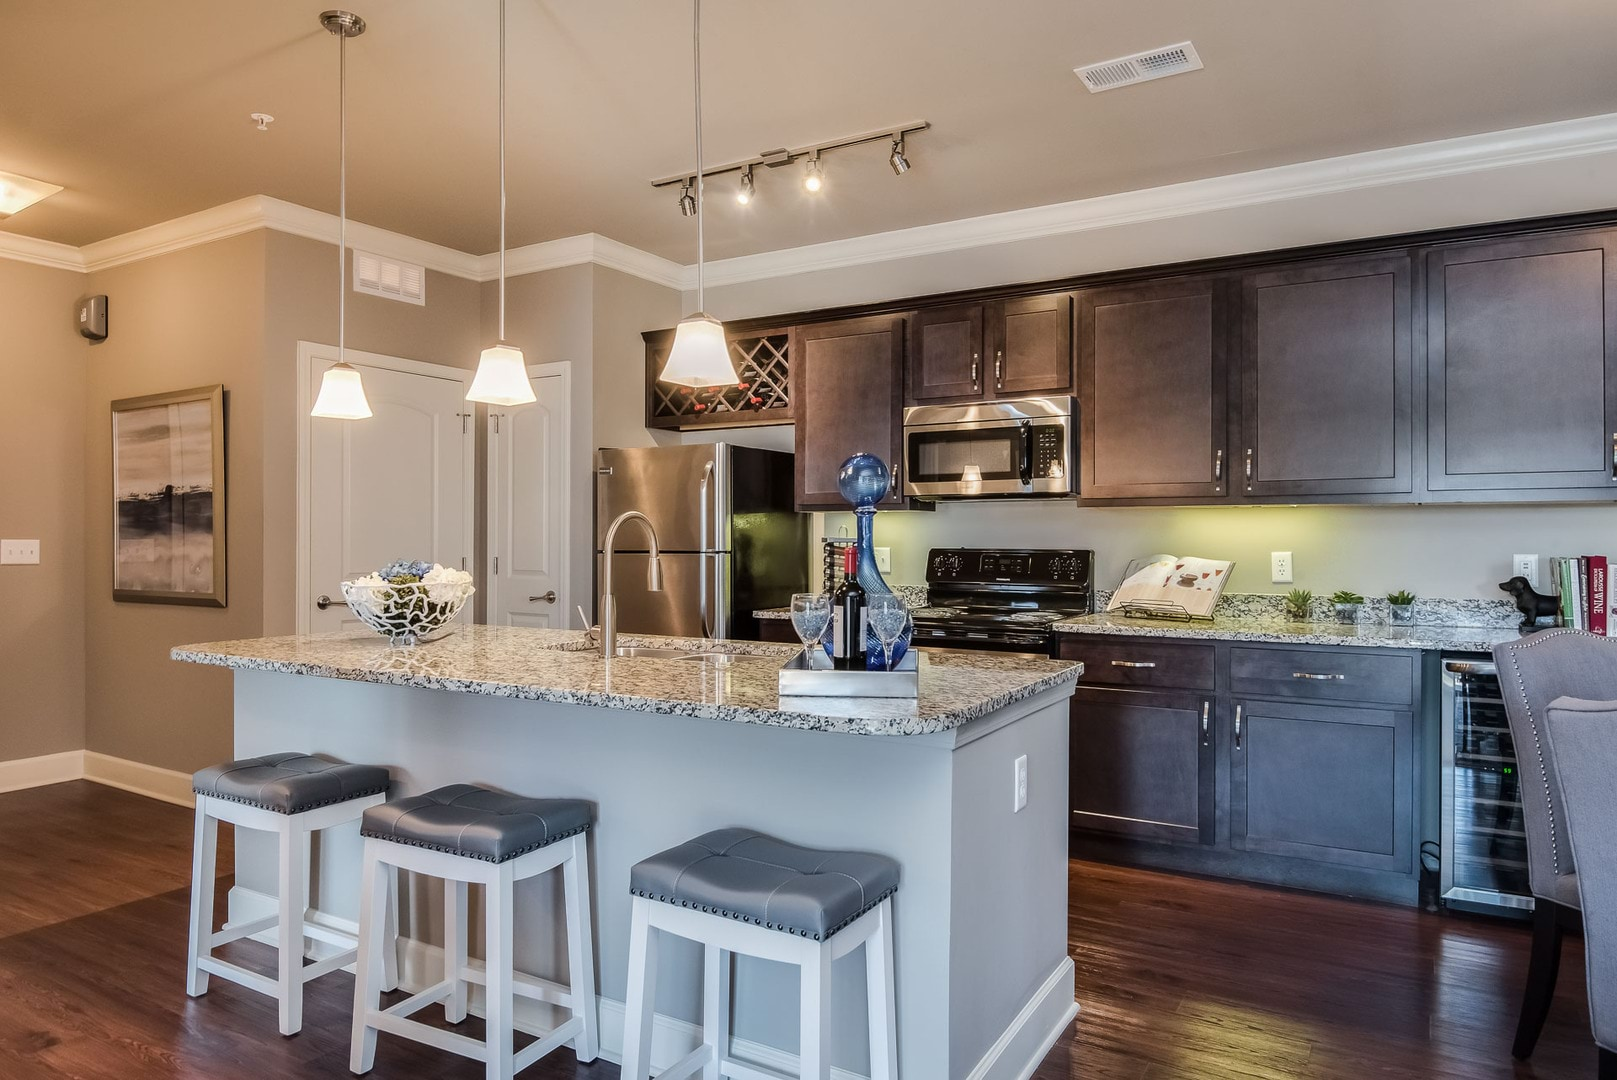 Residences at prairiefire luxury overland park apartments for Residence at prairie fire